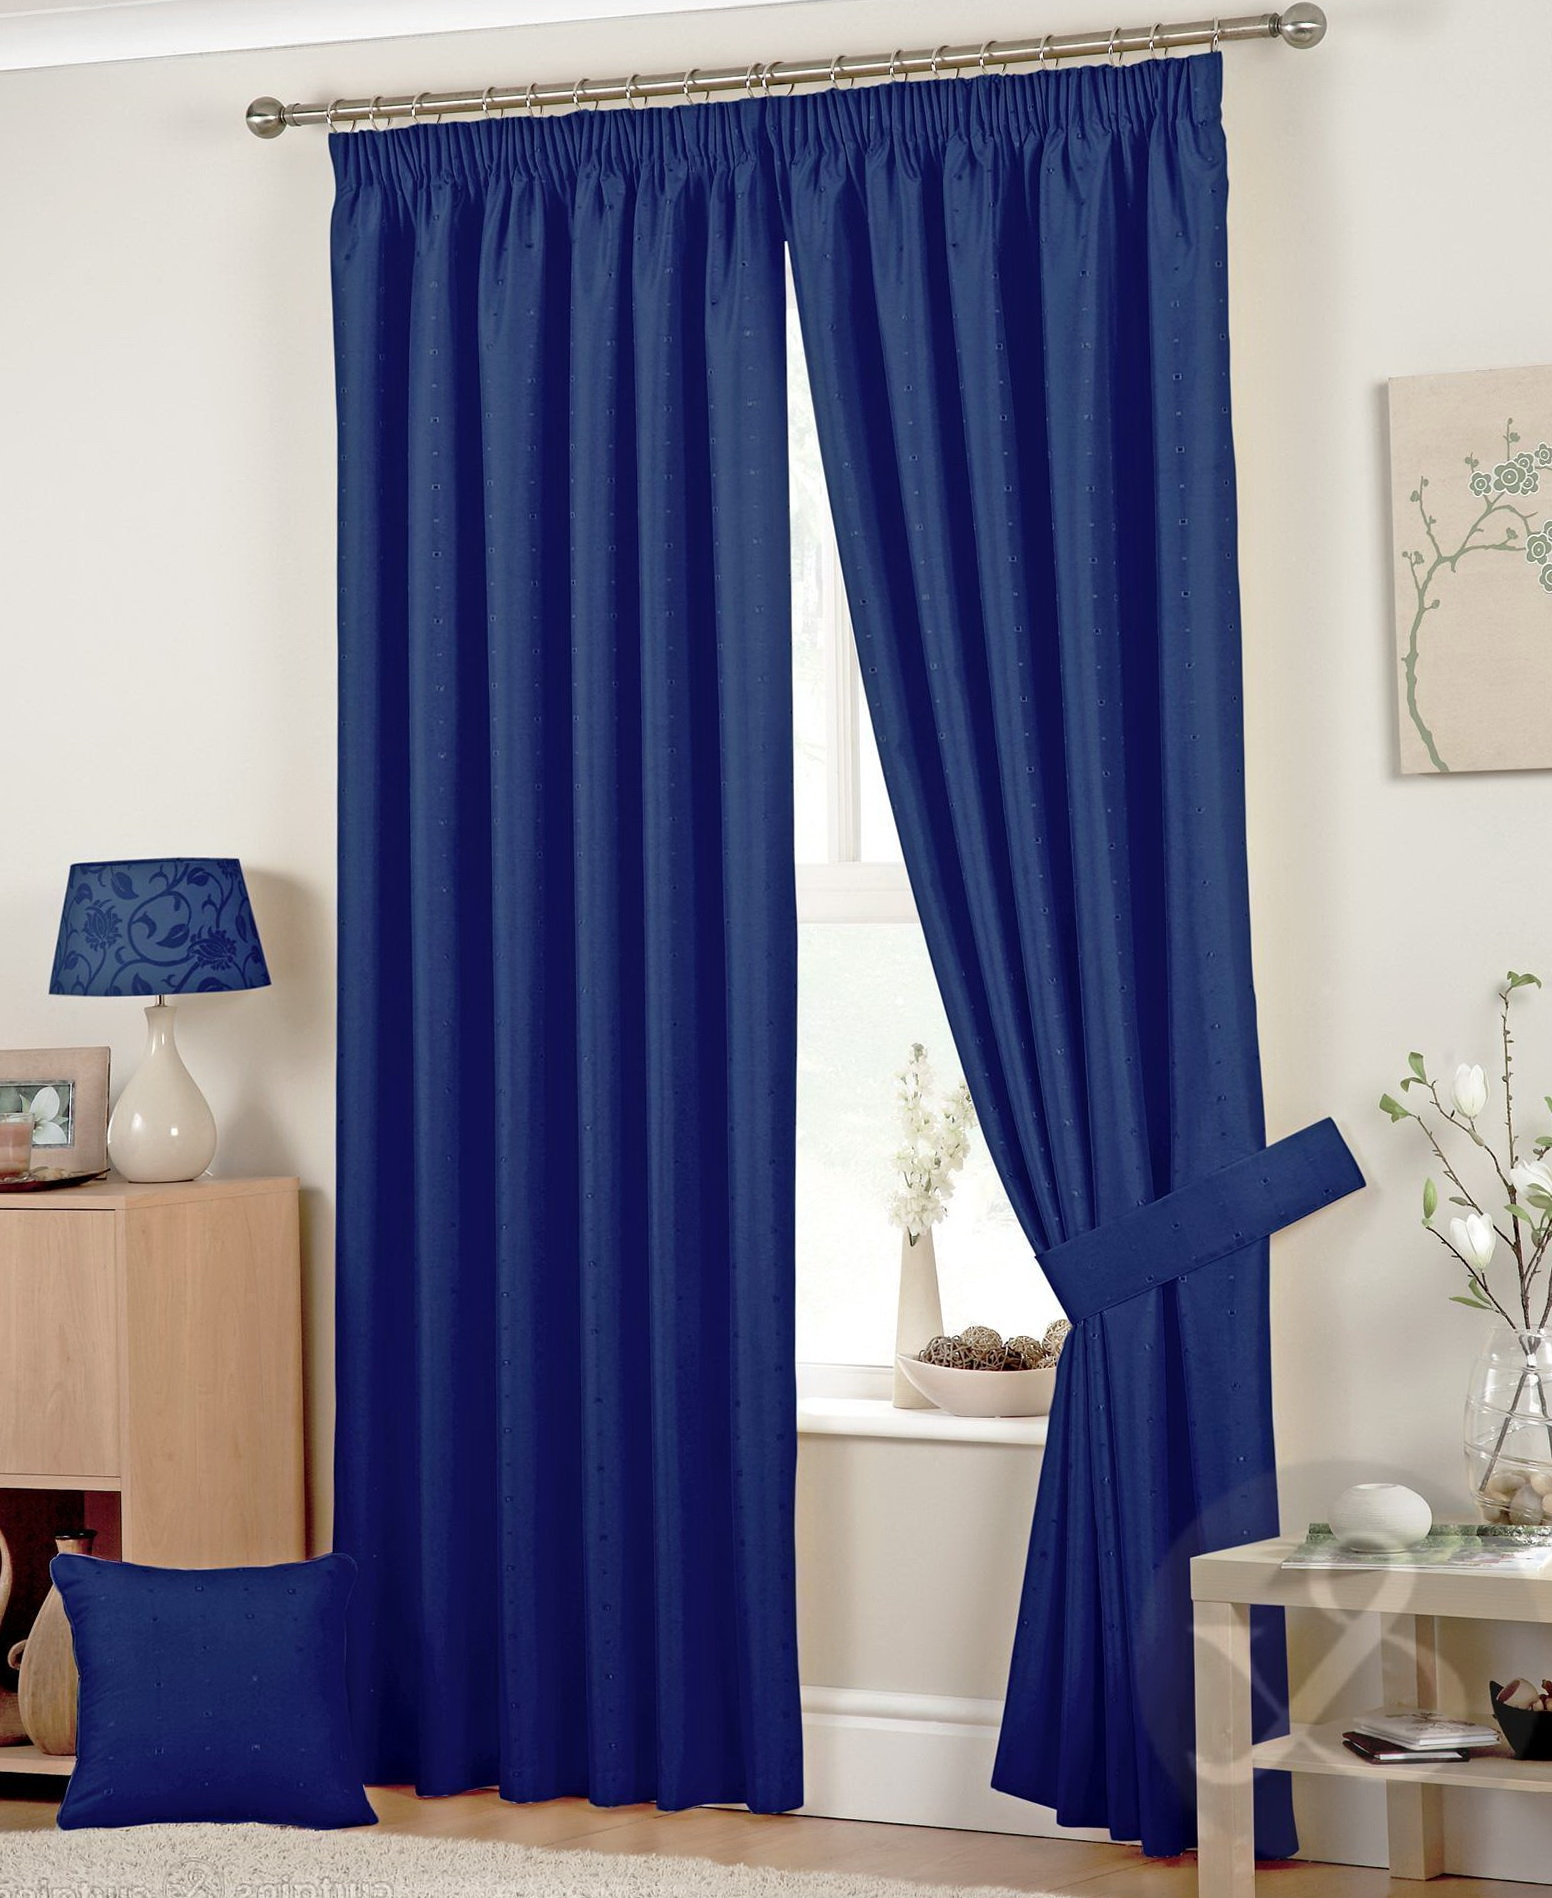 Kitchen Accessories Blue Curtains For Boys Room Home Design Ideas Within Blue Curtains For Boys Room (Image 22 of 25)